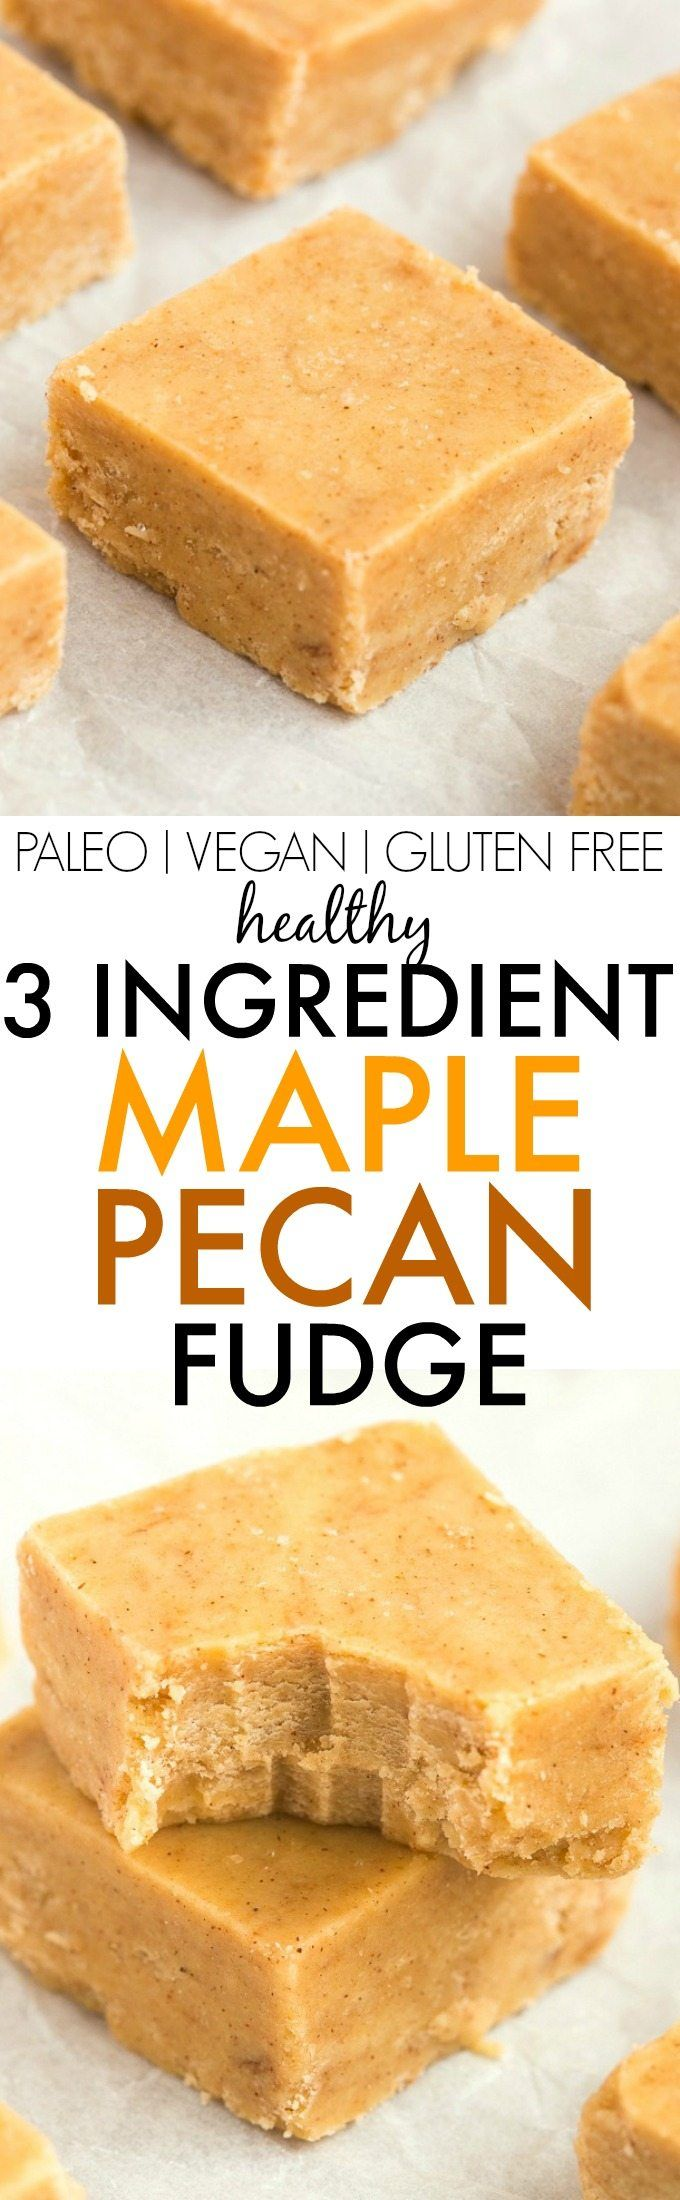 Healthy 3 Ingredient Maple Pecan Fudge- Smooth, creamy and melt-in-your mouth fudge which takes minutes and has NO dairy, refined sugar or butter but you'd never tell- A delicious snack or dessert (perfect for Christmas and holidays!)! {vegan, gluten free, paleo recipe}- thebigmansworld.com